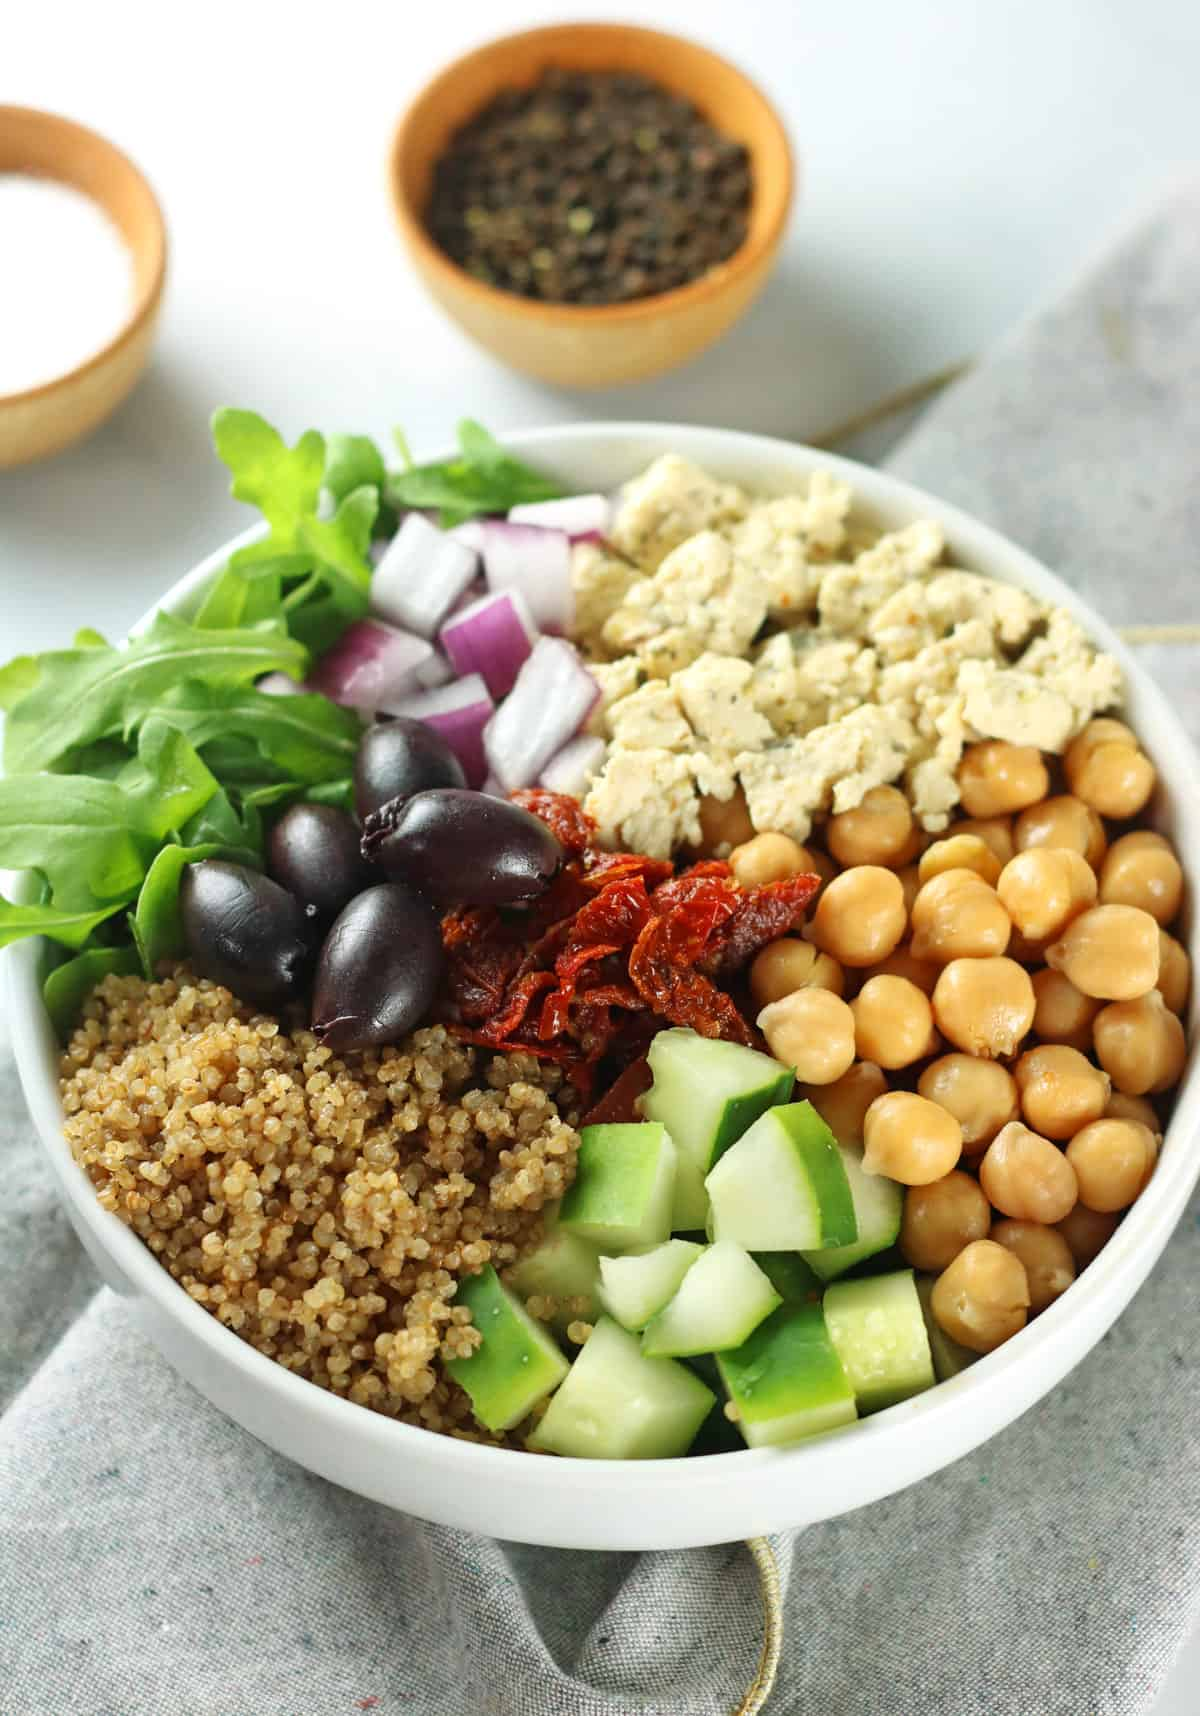 Greek Quinoa salad in bowl with chickpeas, quinoa, cucumber, olives, onions and arugula.